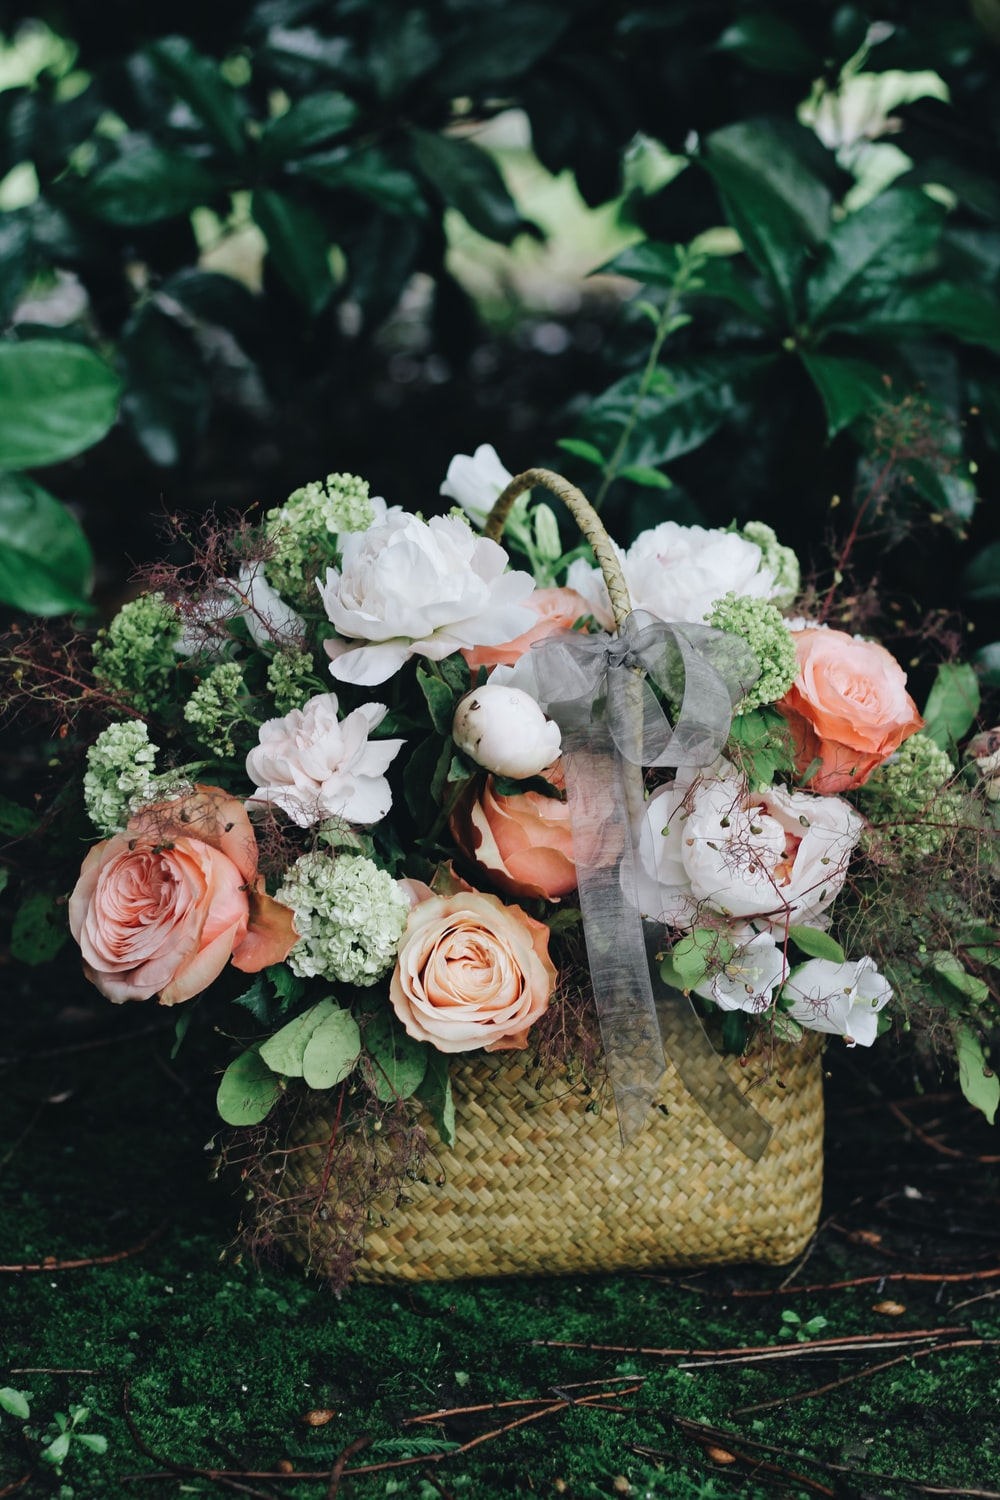 bouquet of white and pink flowers in basket